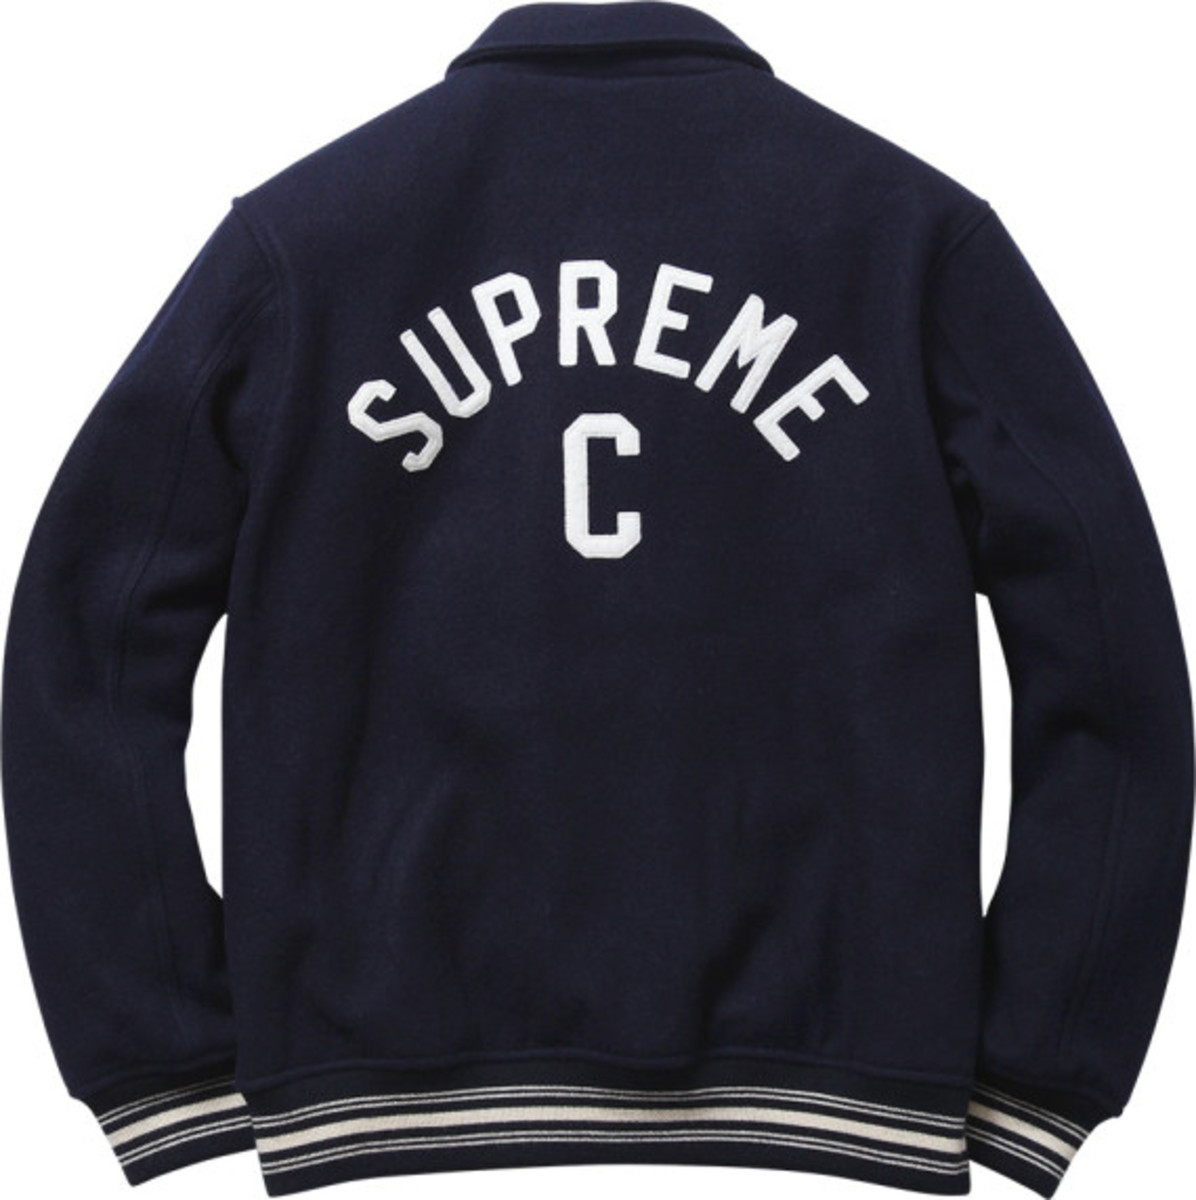 supreme-fall-winter-2013-outerwear-collection-29